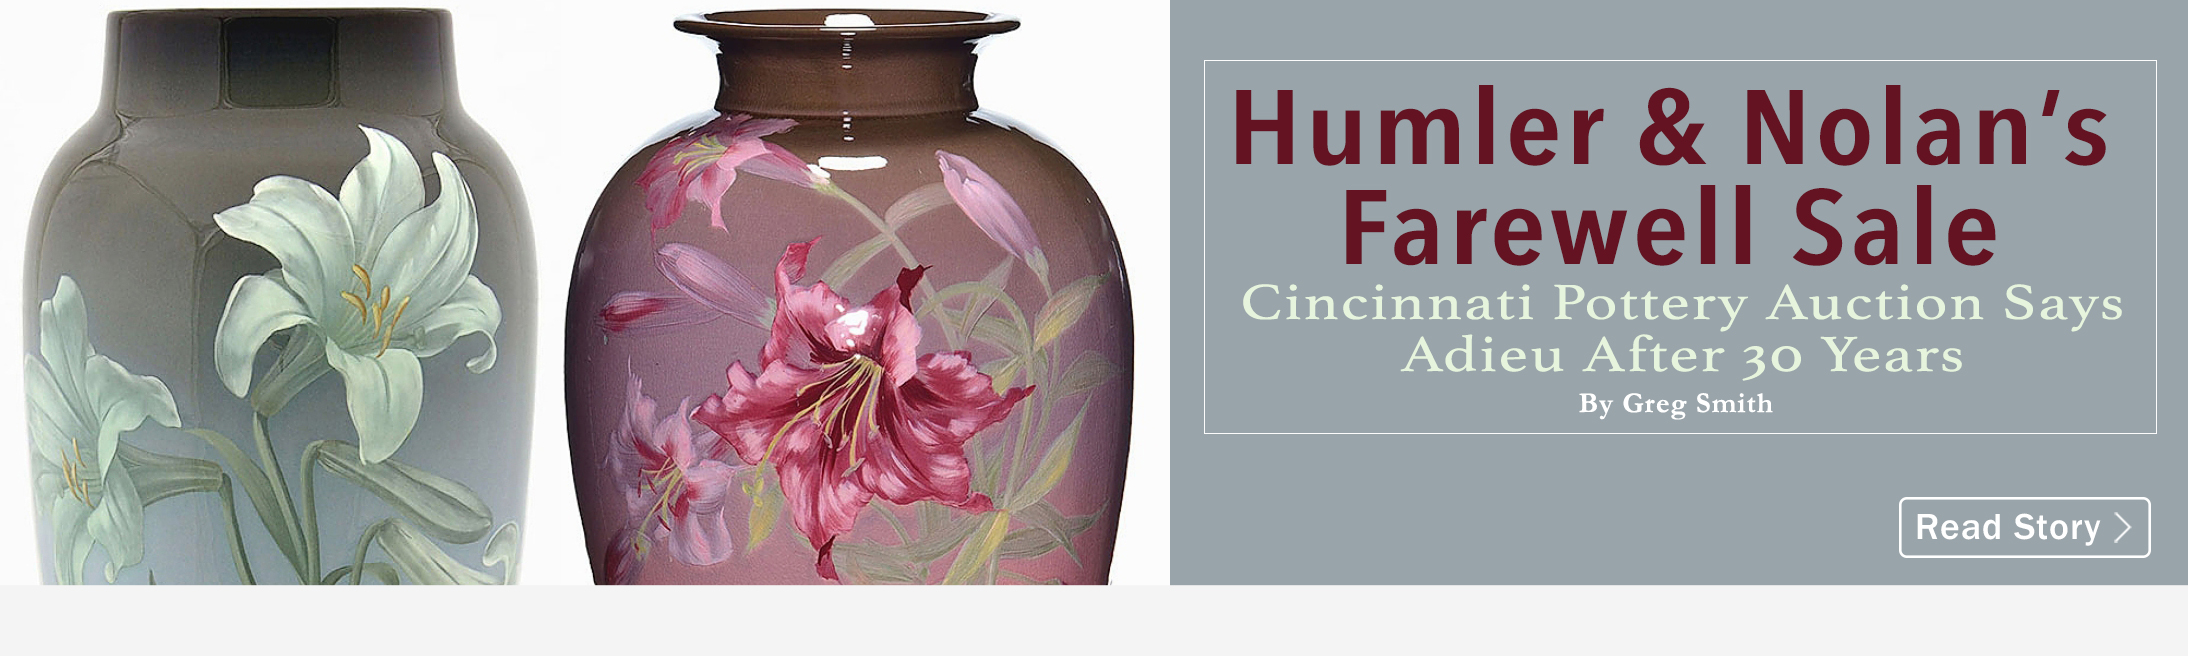 Humler & Nolan's Farewell Sale, Cincinnati Pottery Auction Says Adieu After 30 Years